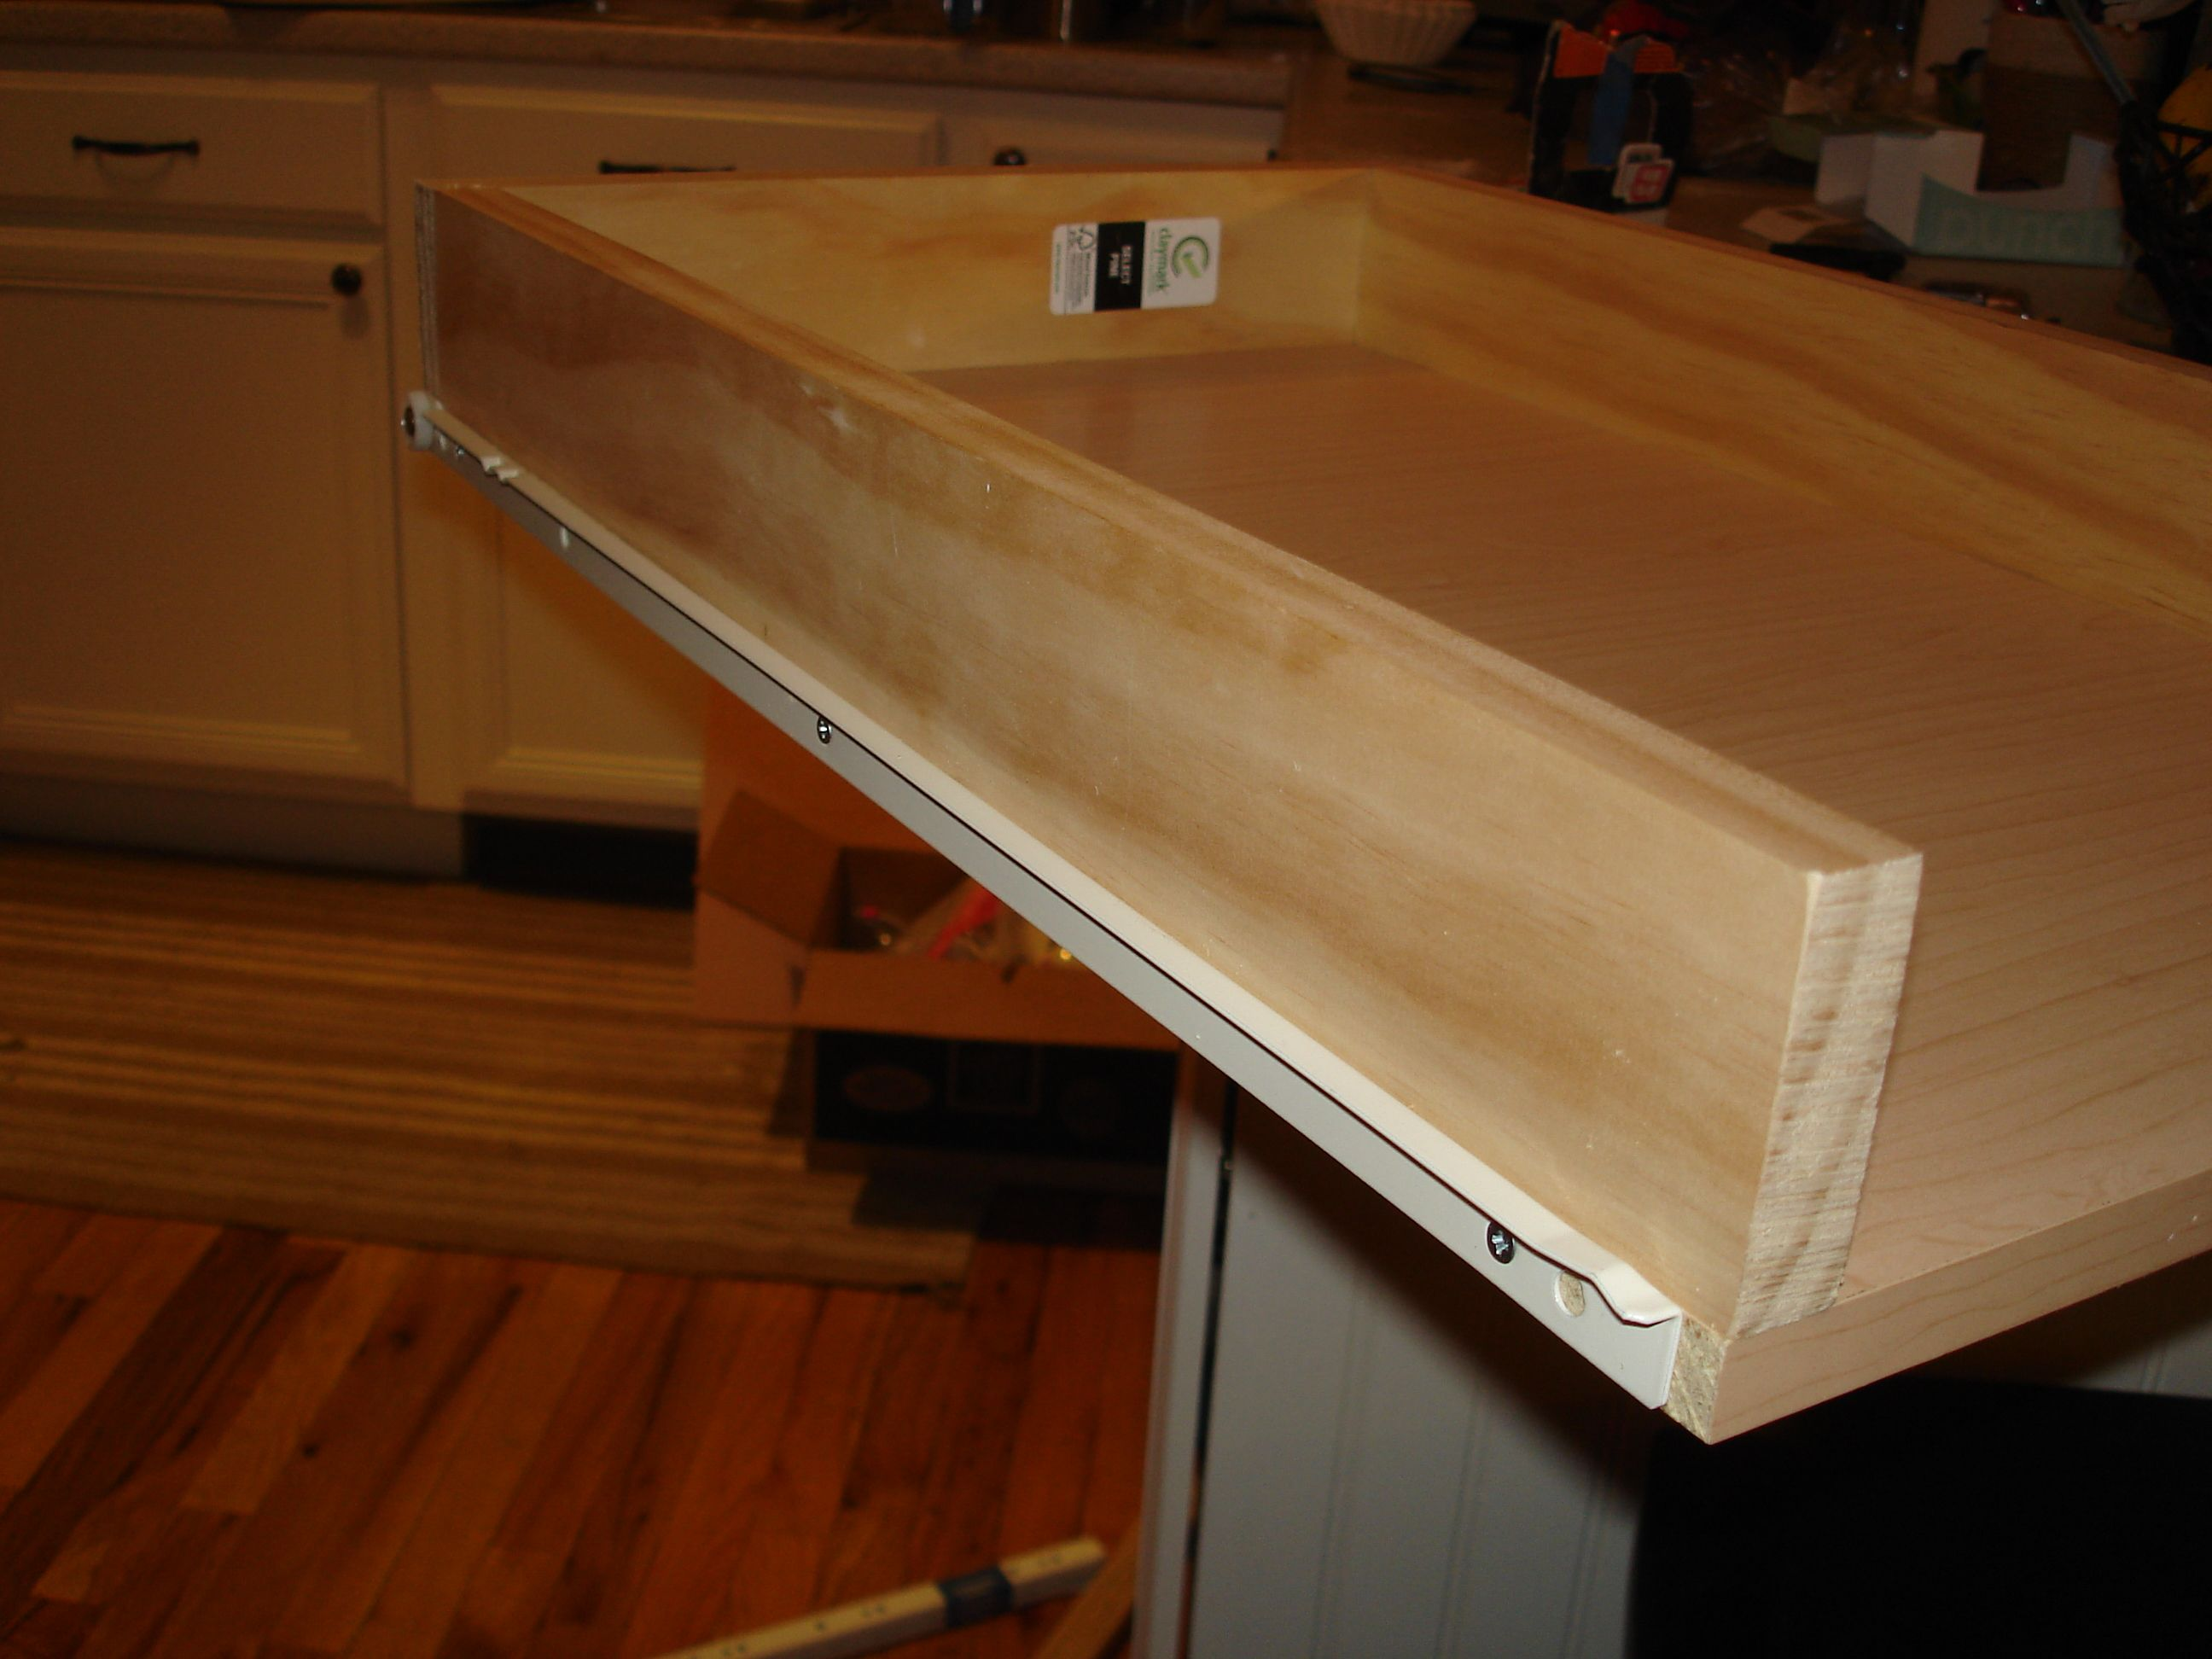 DIY pull out pantry shelves organization ideas